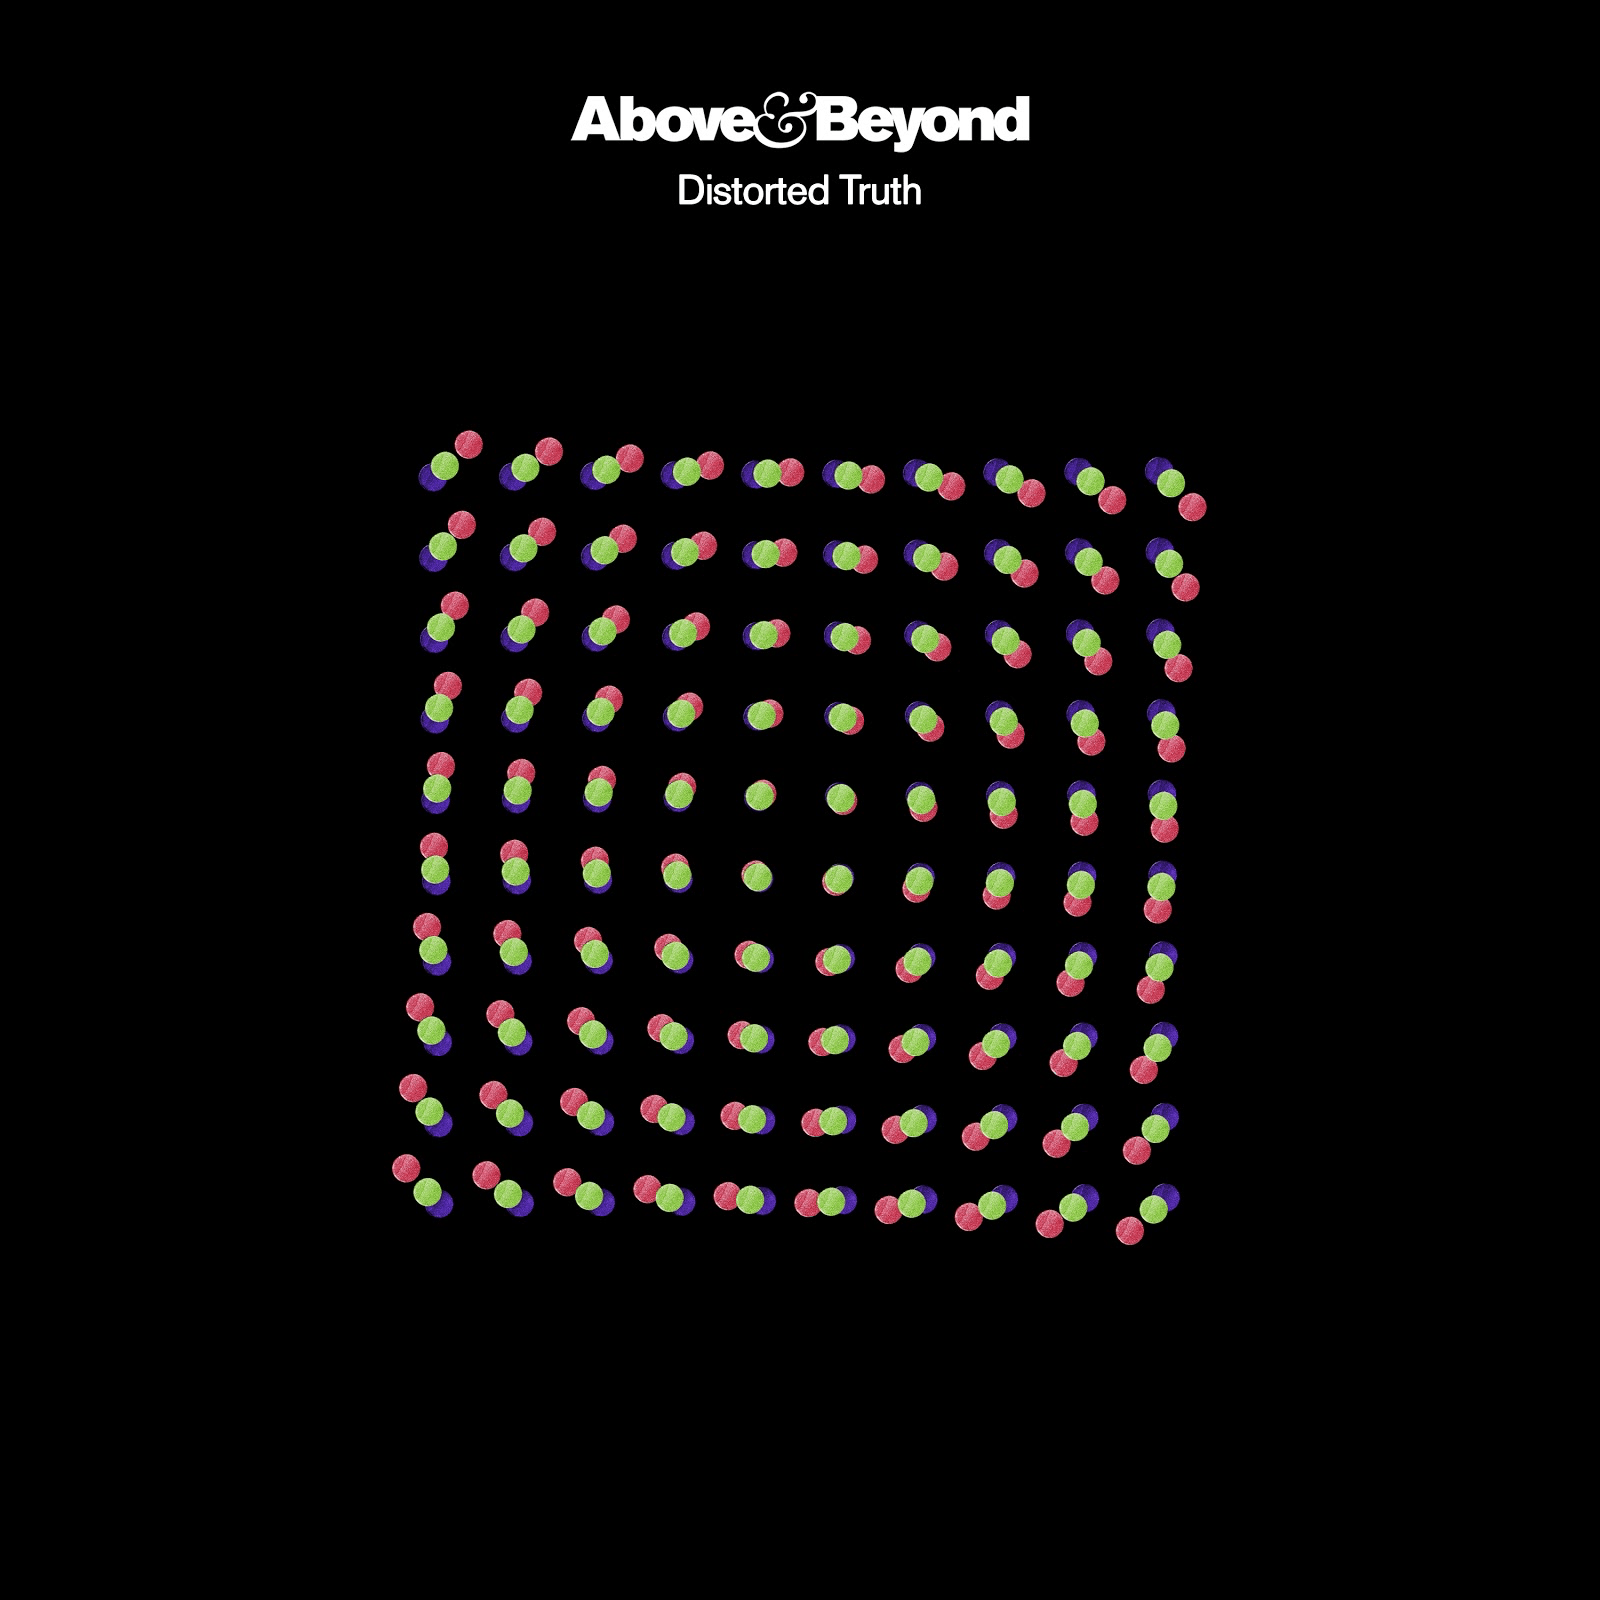 Above & Beyond release 'Distorted Truth'